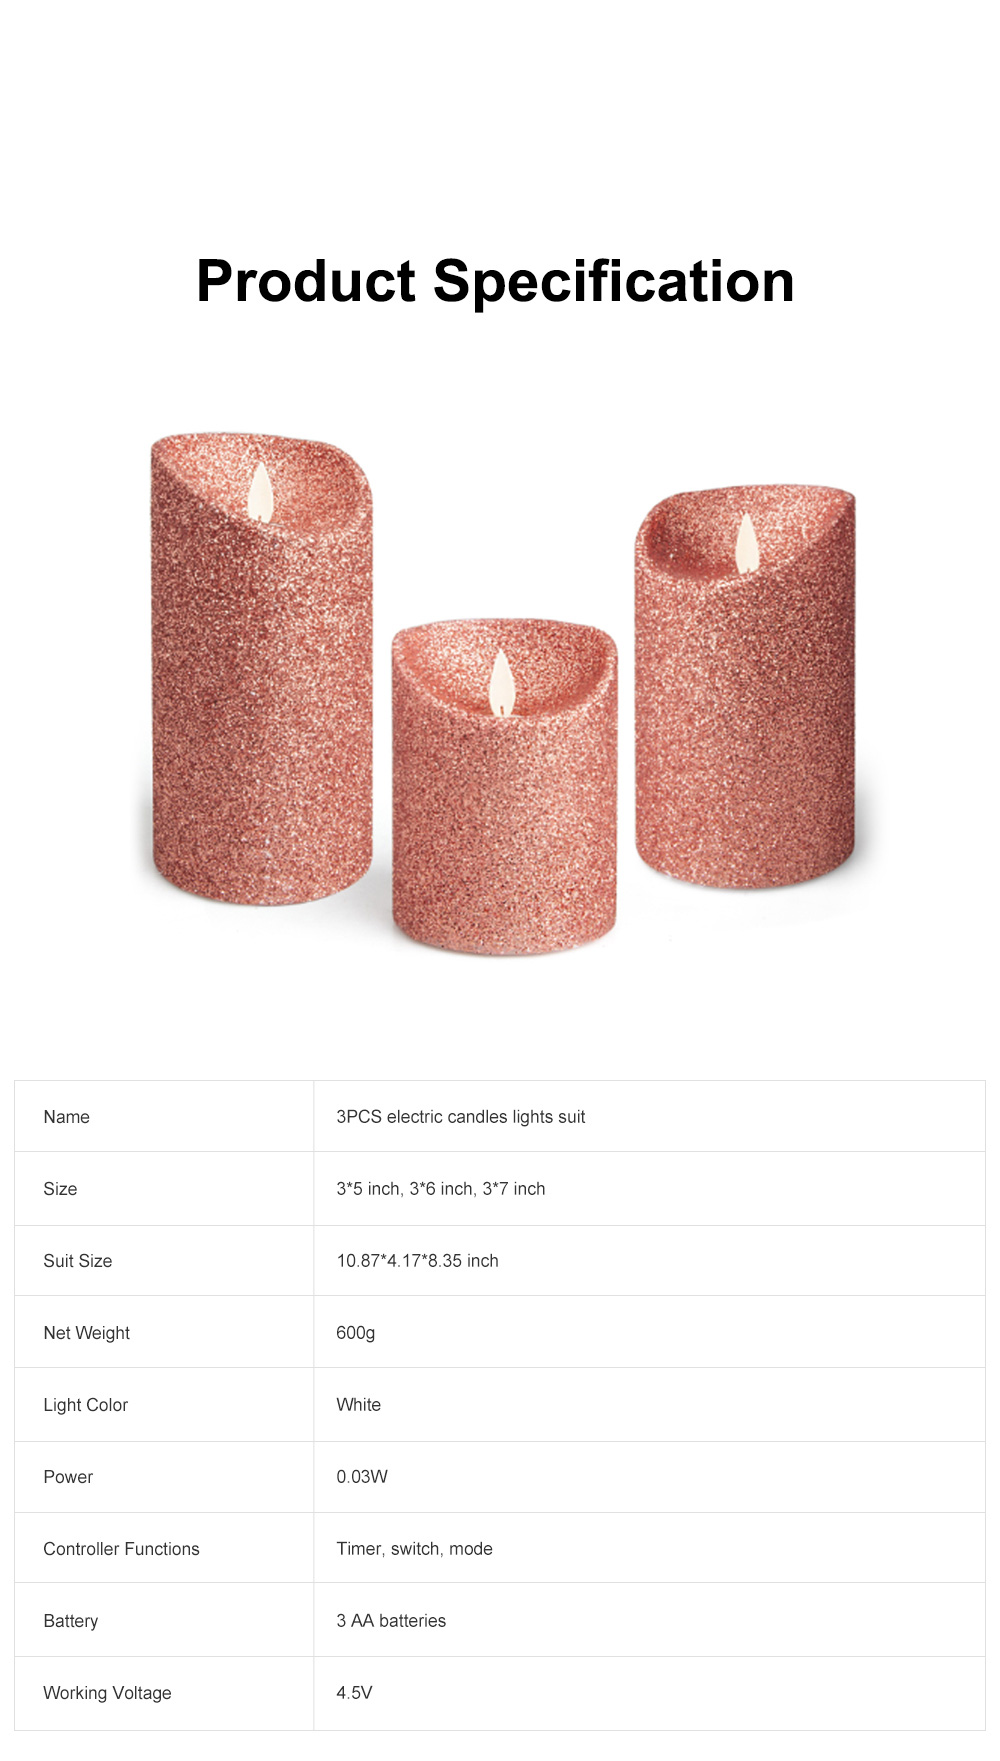 3PCS Led Candle Light Suit Rose Golden Simulation Flame Smokeless Electric Candle Lights with Remote Control Adjustable Automatic Timer 6